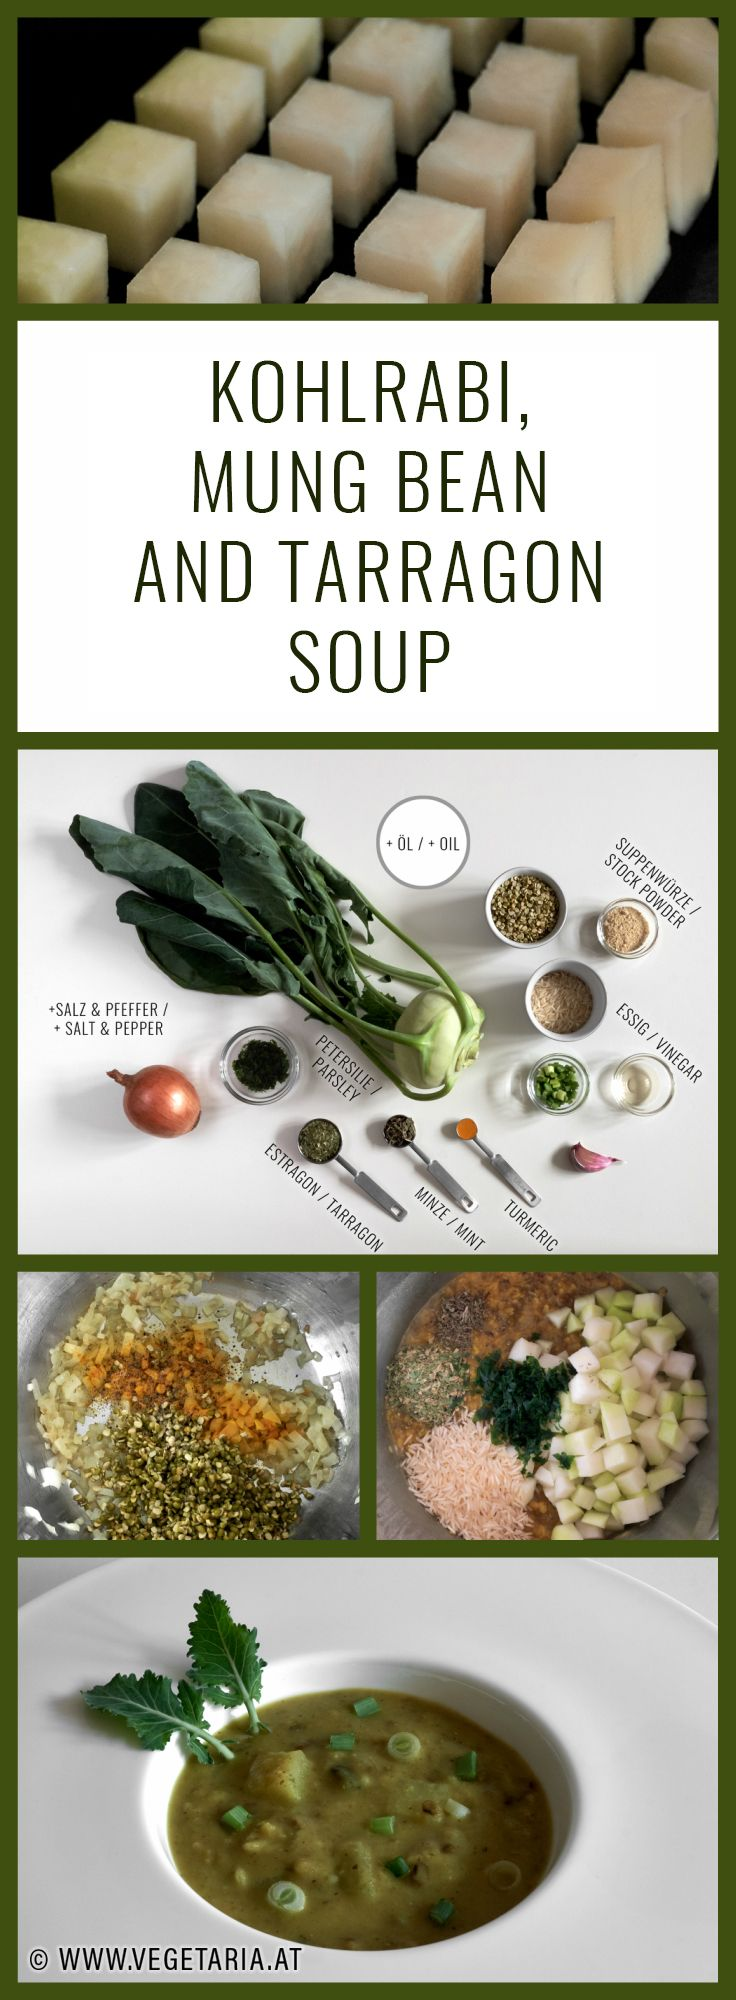 Perfect for cold winter weather, this thick and hearty soup is a wonderful way to eat your greens.